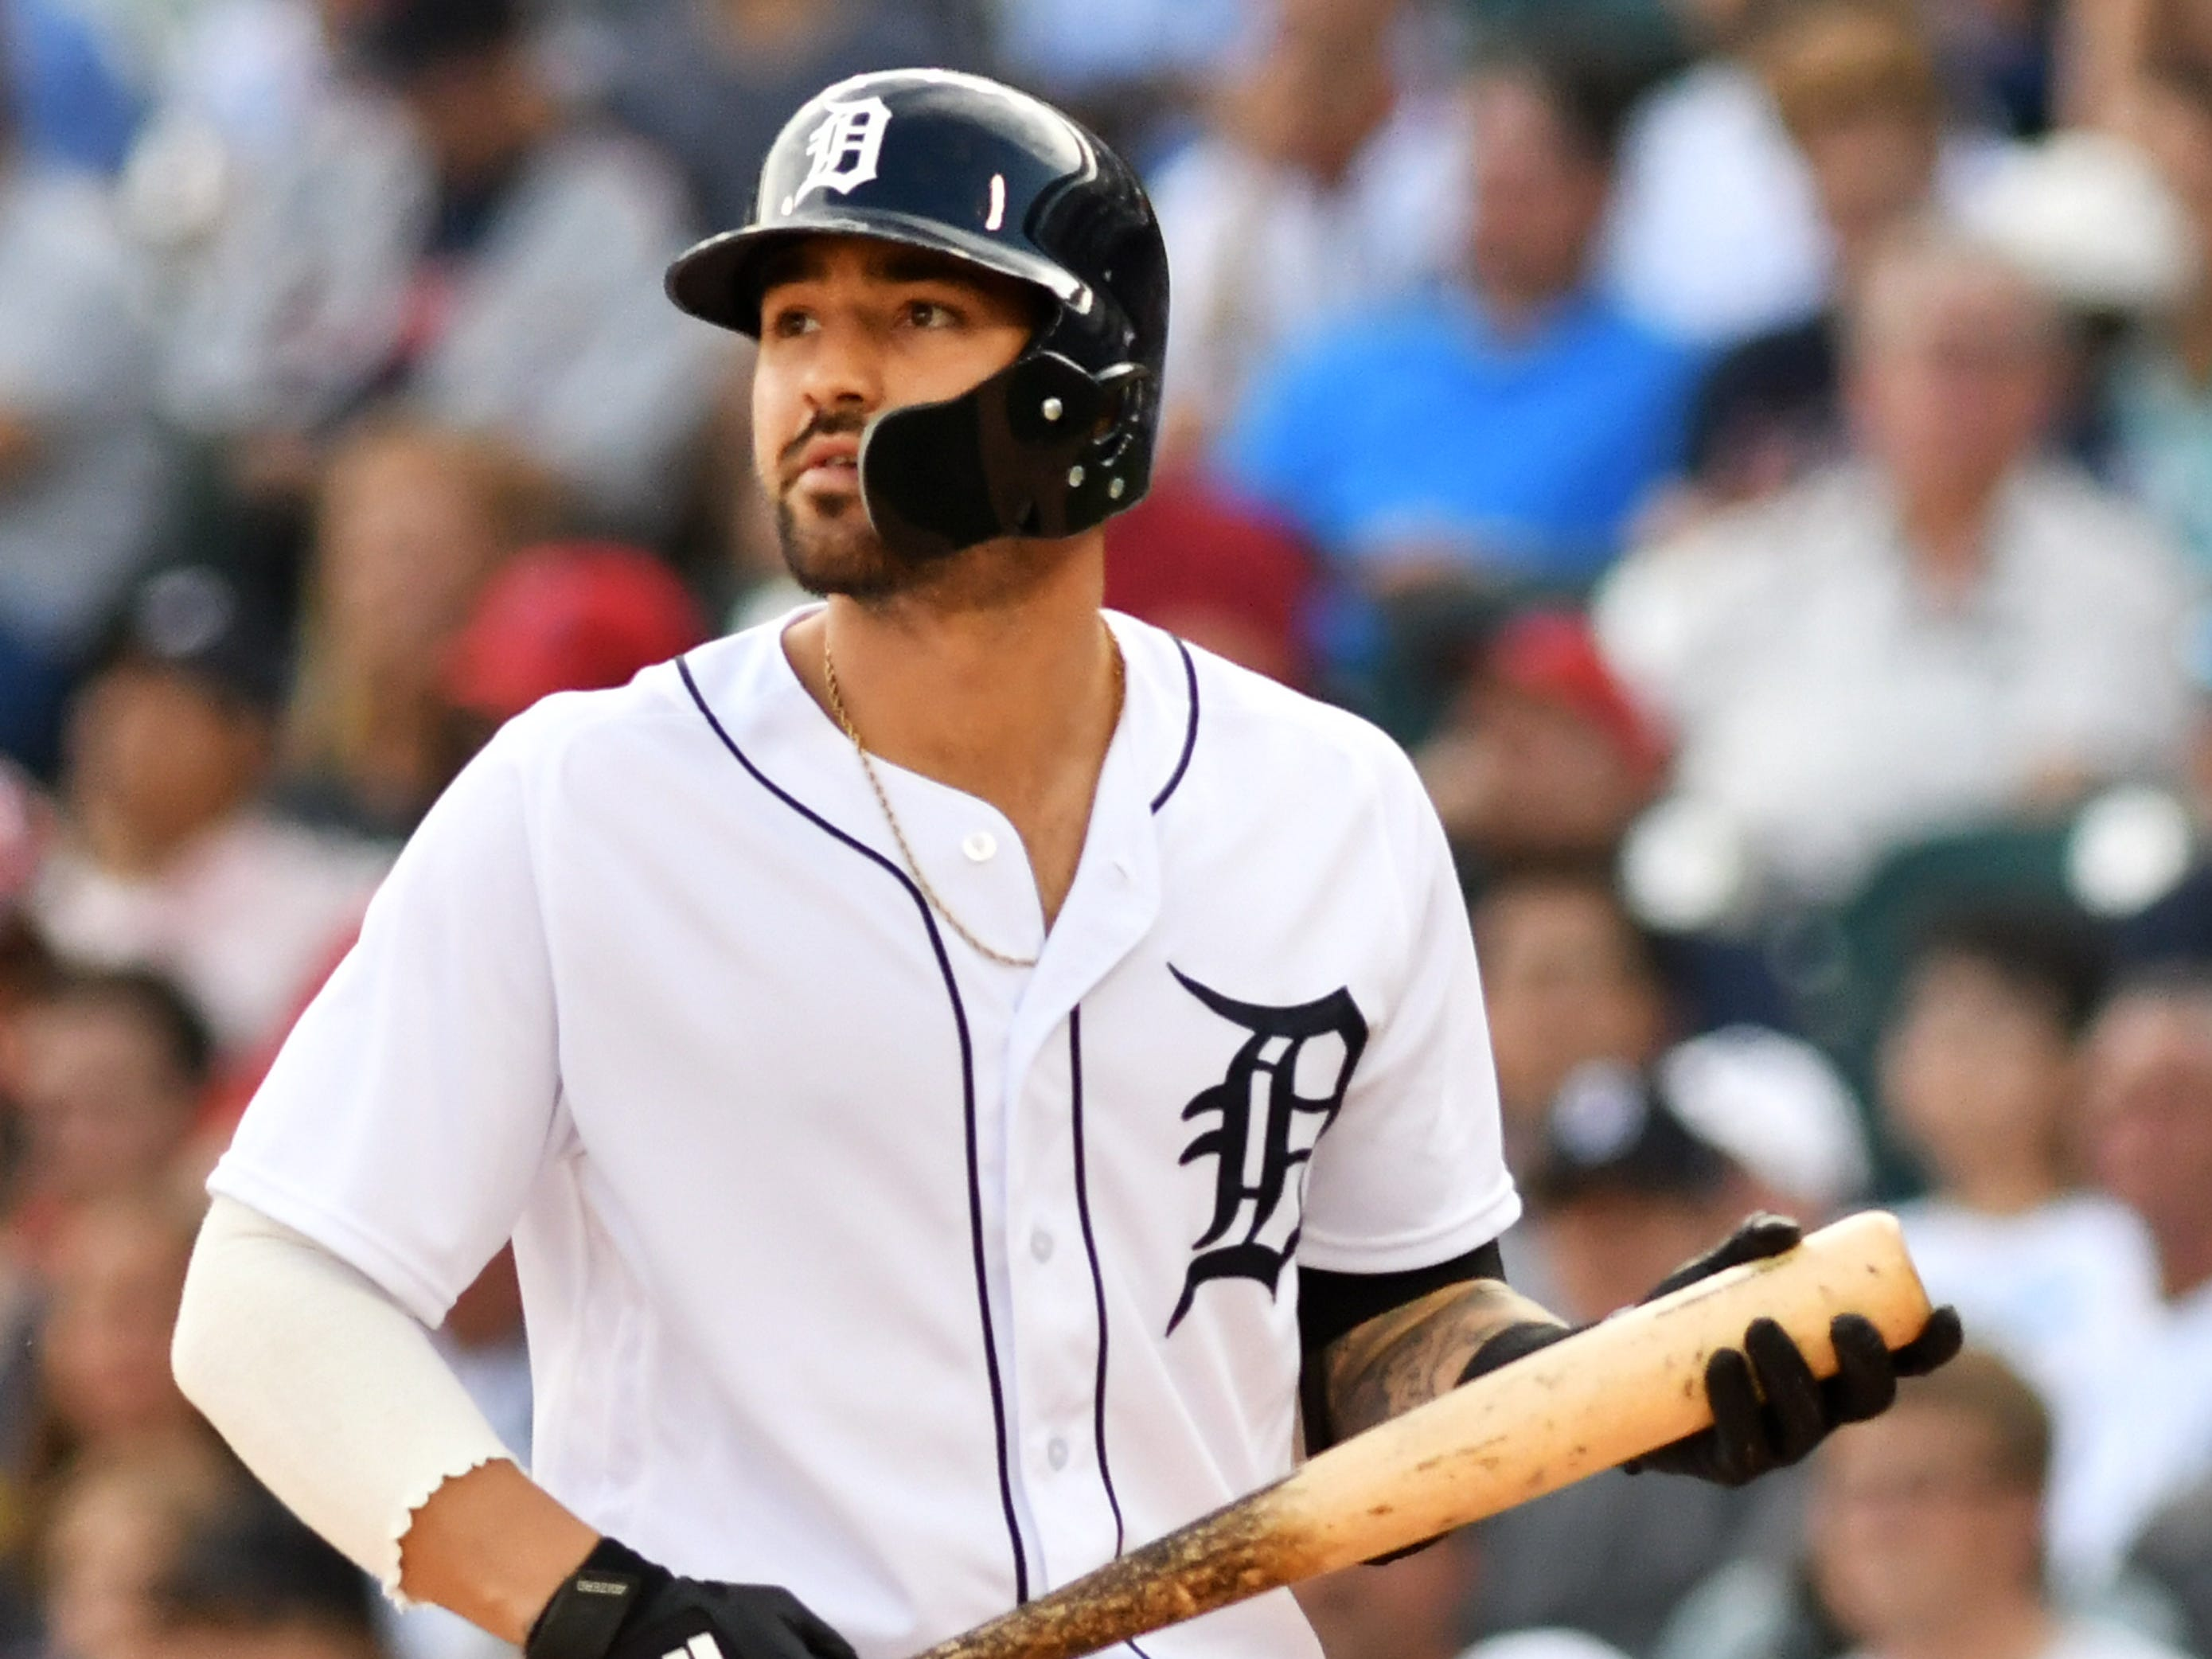 OUTFIELDERS: Nick Castellanos (.298/.354/.500), right field: His best offensive year comes when he has negligible protection in the lineup and teams often were pitching around him. Impressive. Fifty-six multiple hit games, 46 doubles (fourth in the American League), 185 hits (third in the A.L.), 23 home runs – he was in the top 15 in eight offensive categories. He hit .282 off breaking balls, .290 off fastballs and .377 off off-speed pitches. His .381 average off lefties is the best in baseball. His offensive WAR is 4.7. His defensive WAR, though, is minus-2.4. He remains a work in progress defensively.   Mid-term grade: B-plus.  Second-half grade: B-plus. Final grade: B-plus